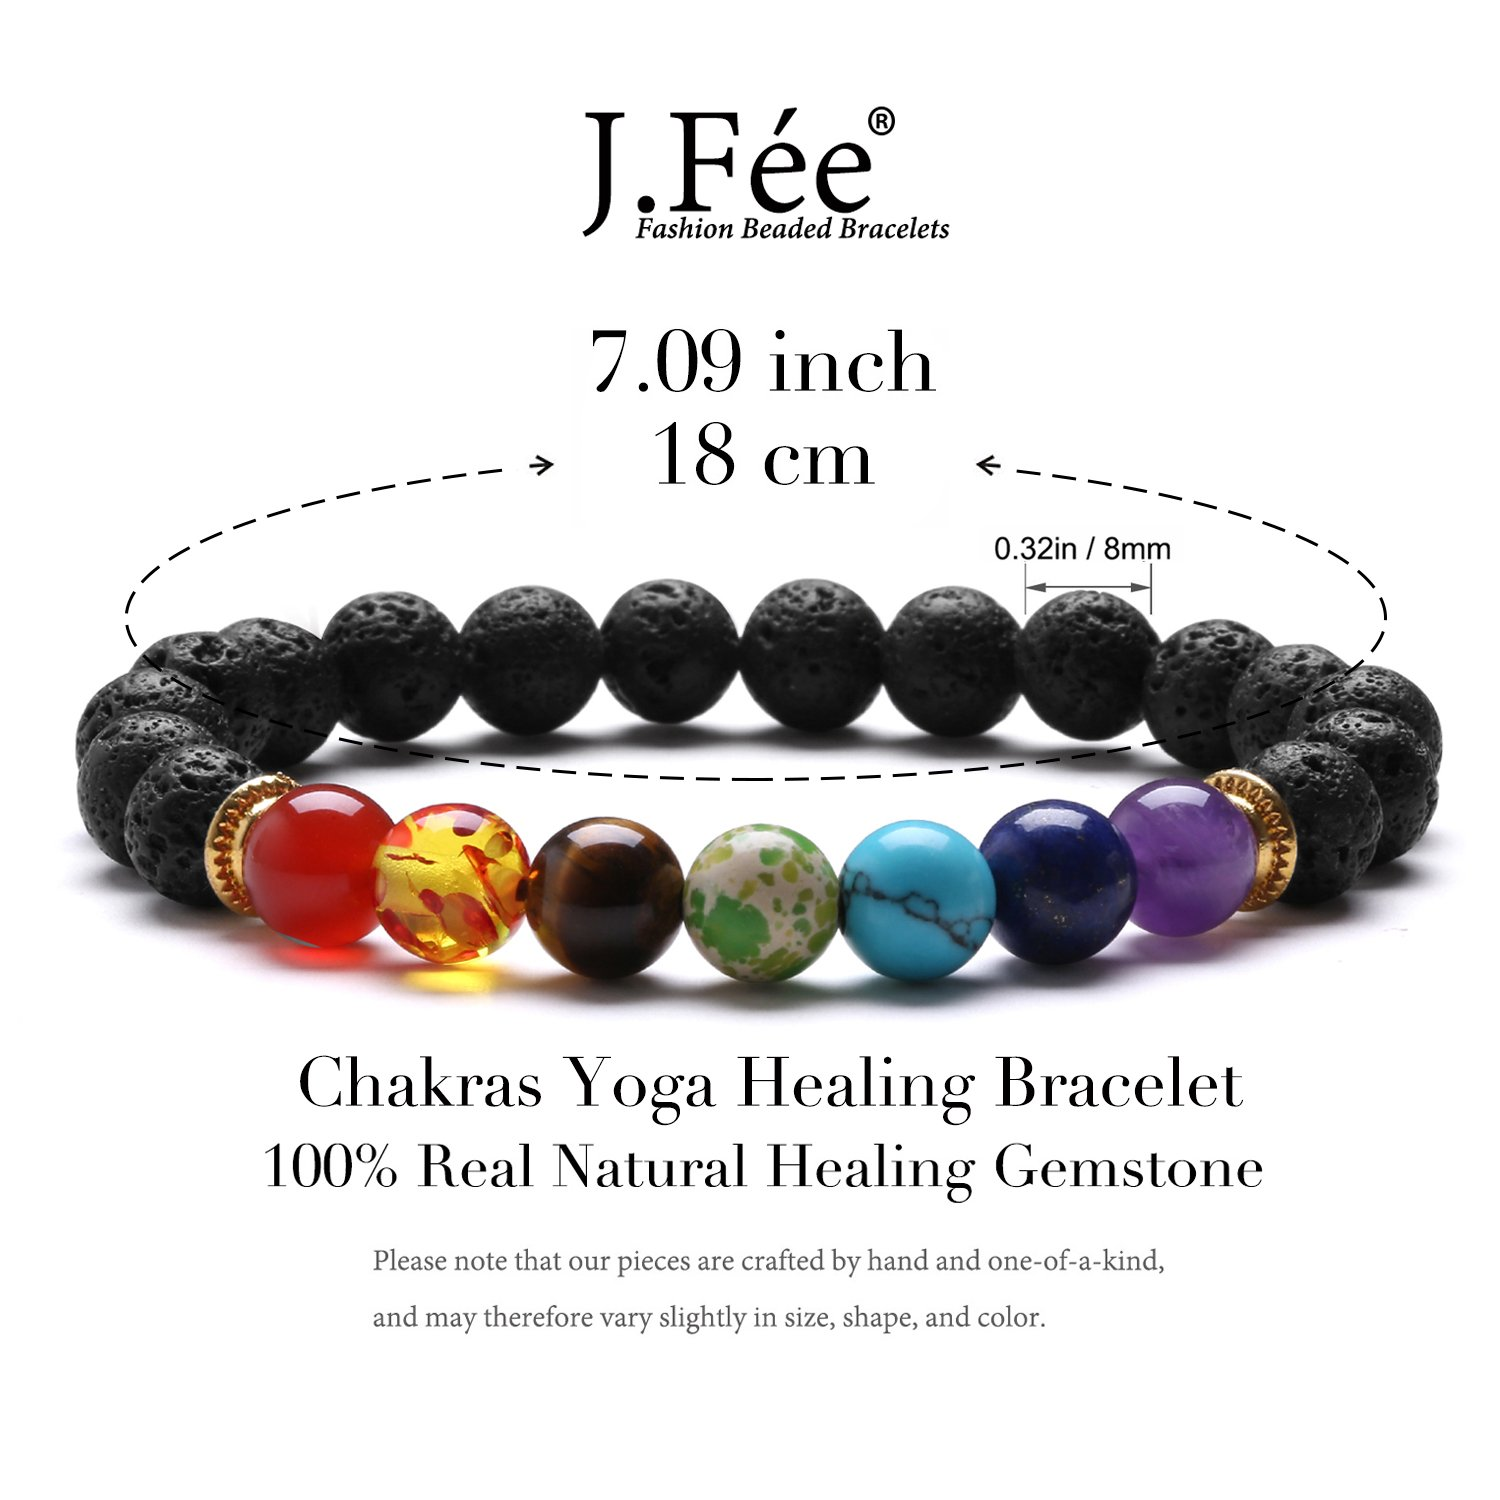 mbr amber cherry grey lux baltic baroque bracelet healing premium beads dark polished rounded unpolished